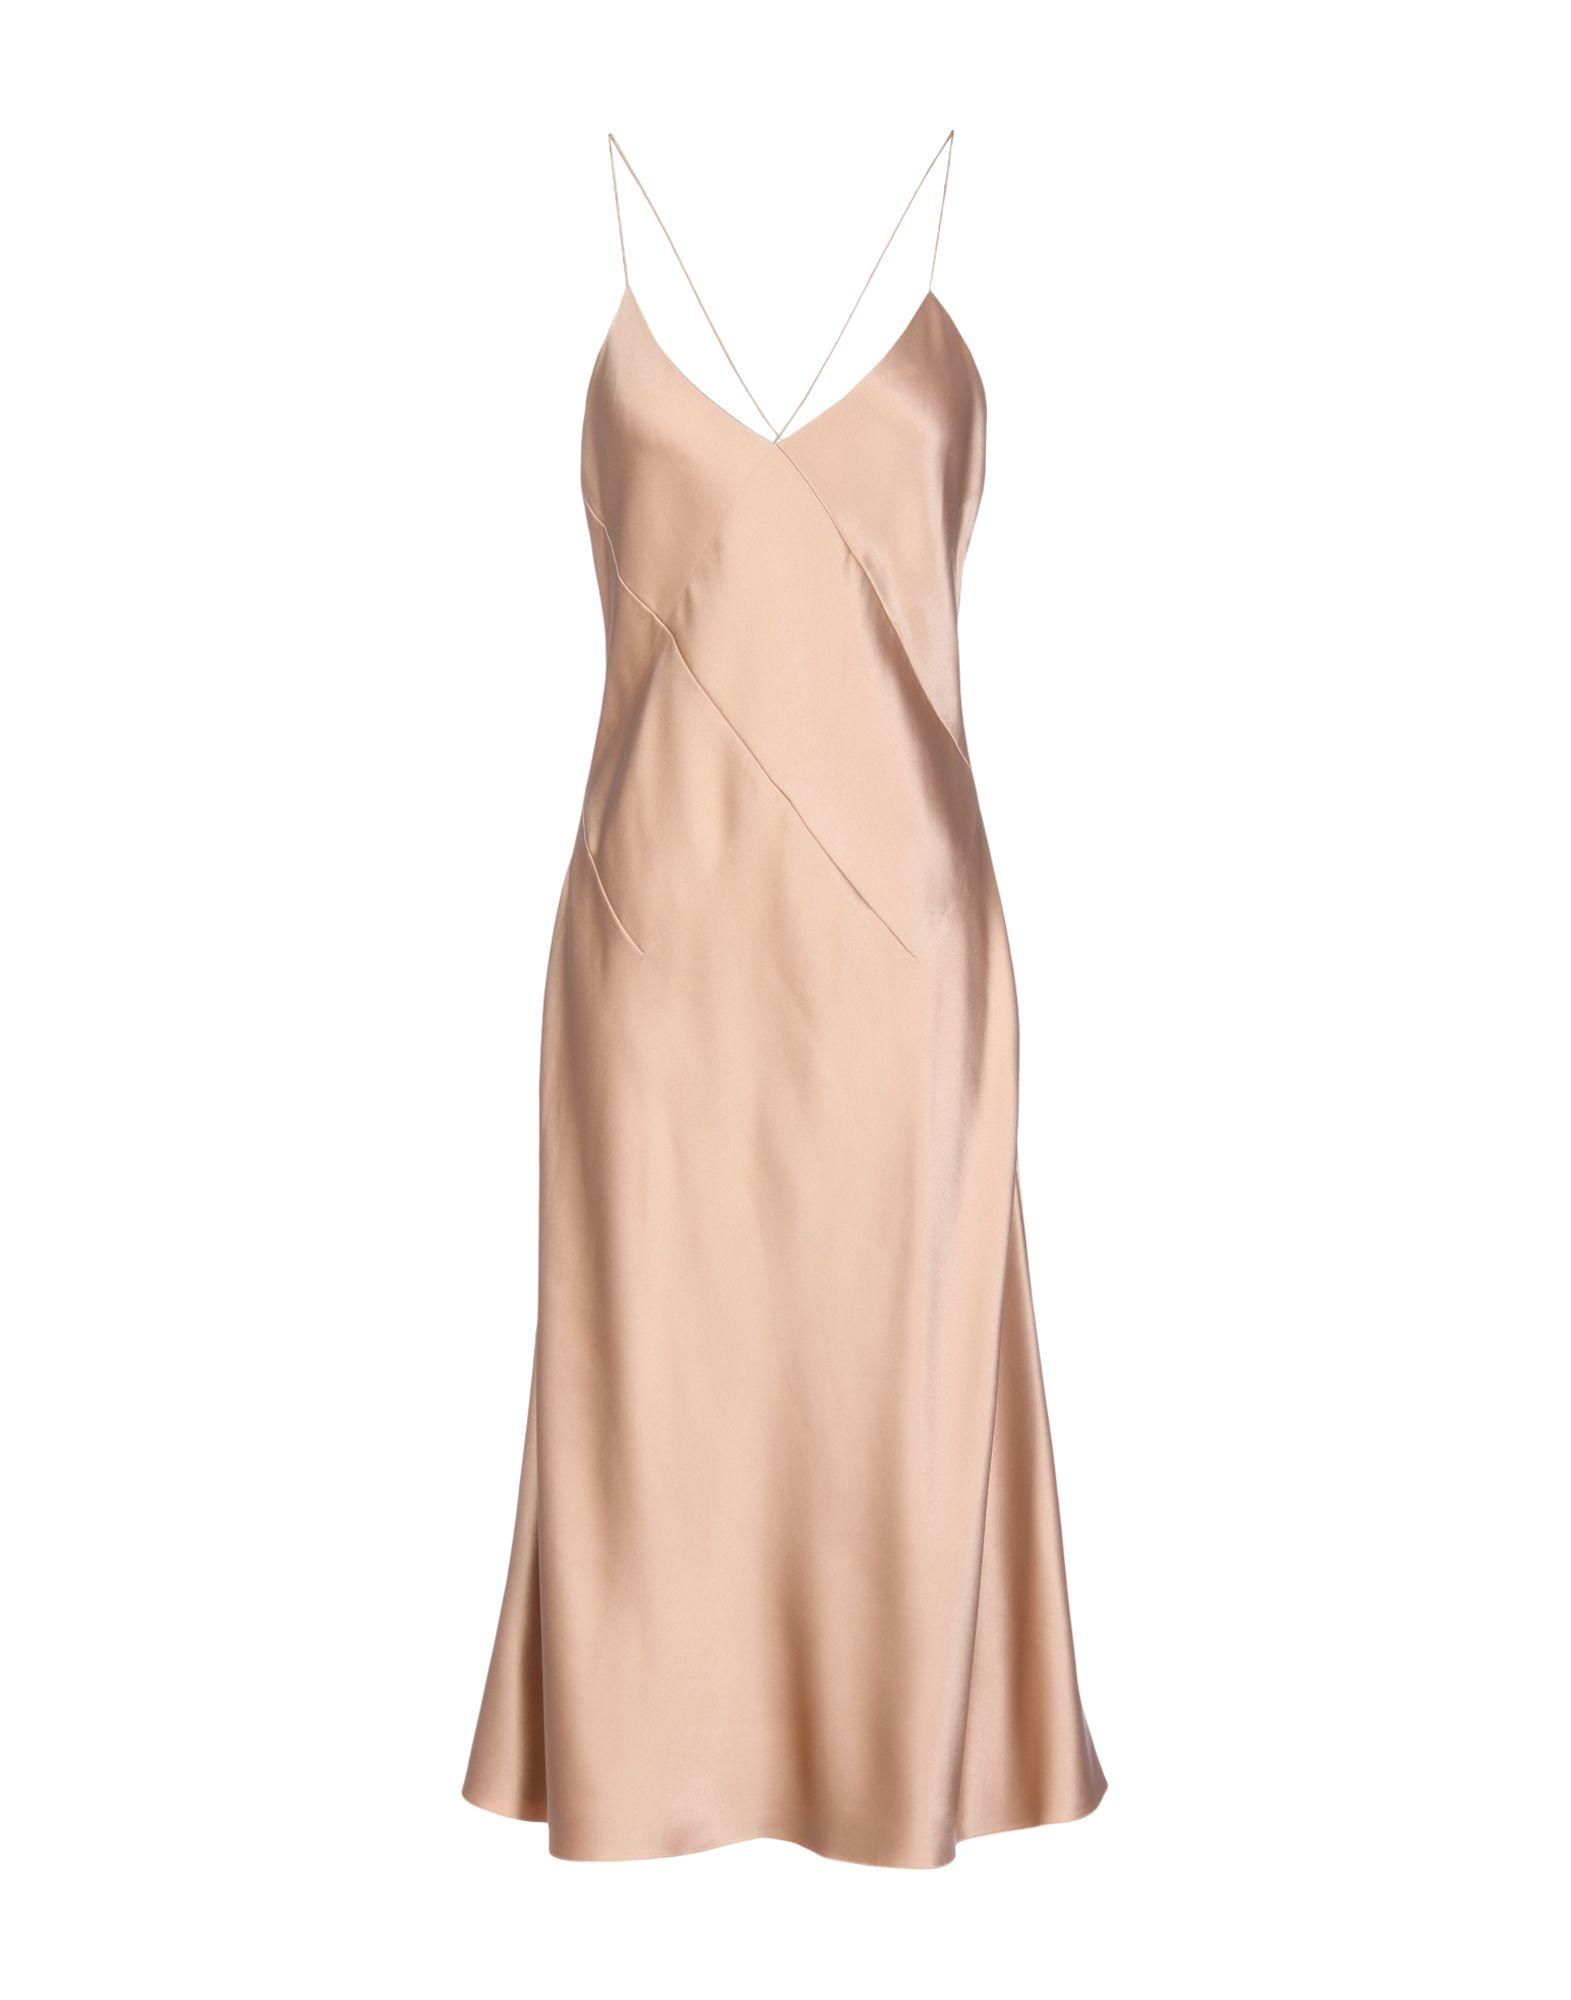 Cushnie Et Ochs Knee-Length Dresses In Light Brown